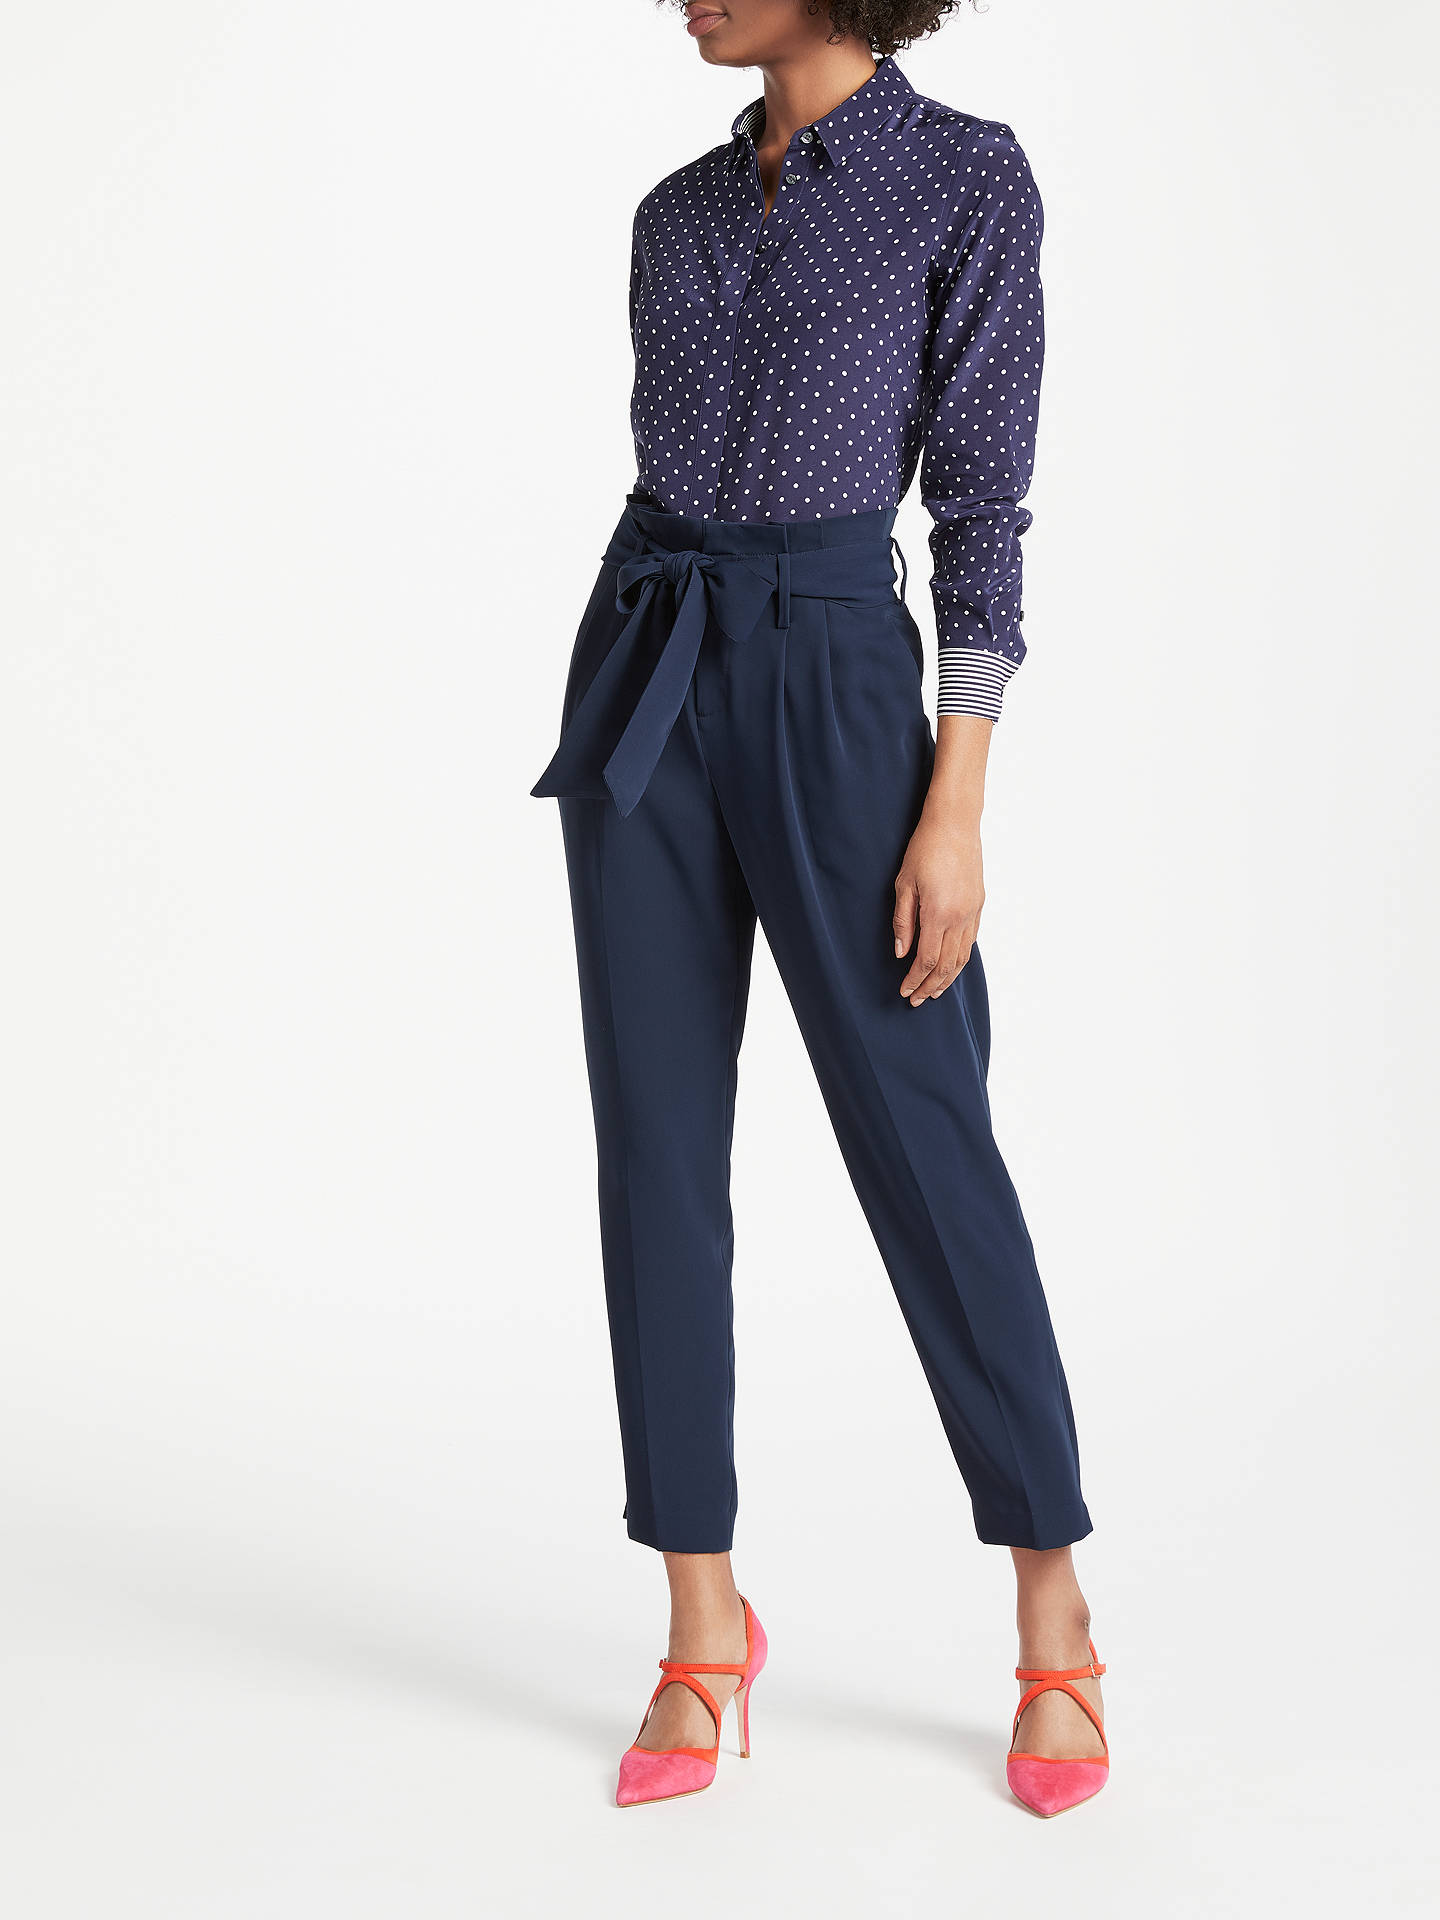 BuyBoden Melina Paperbag Trousers, Navy, 8 Online at johnlewis.com